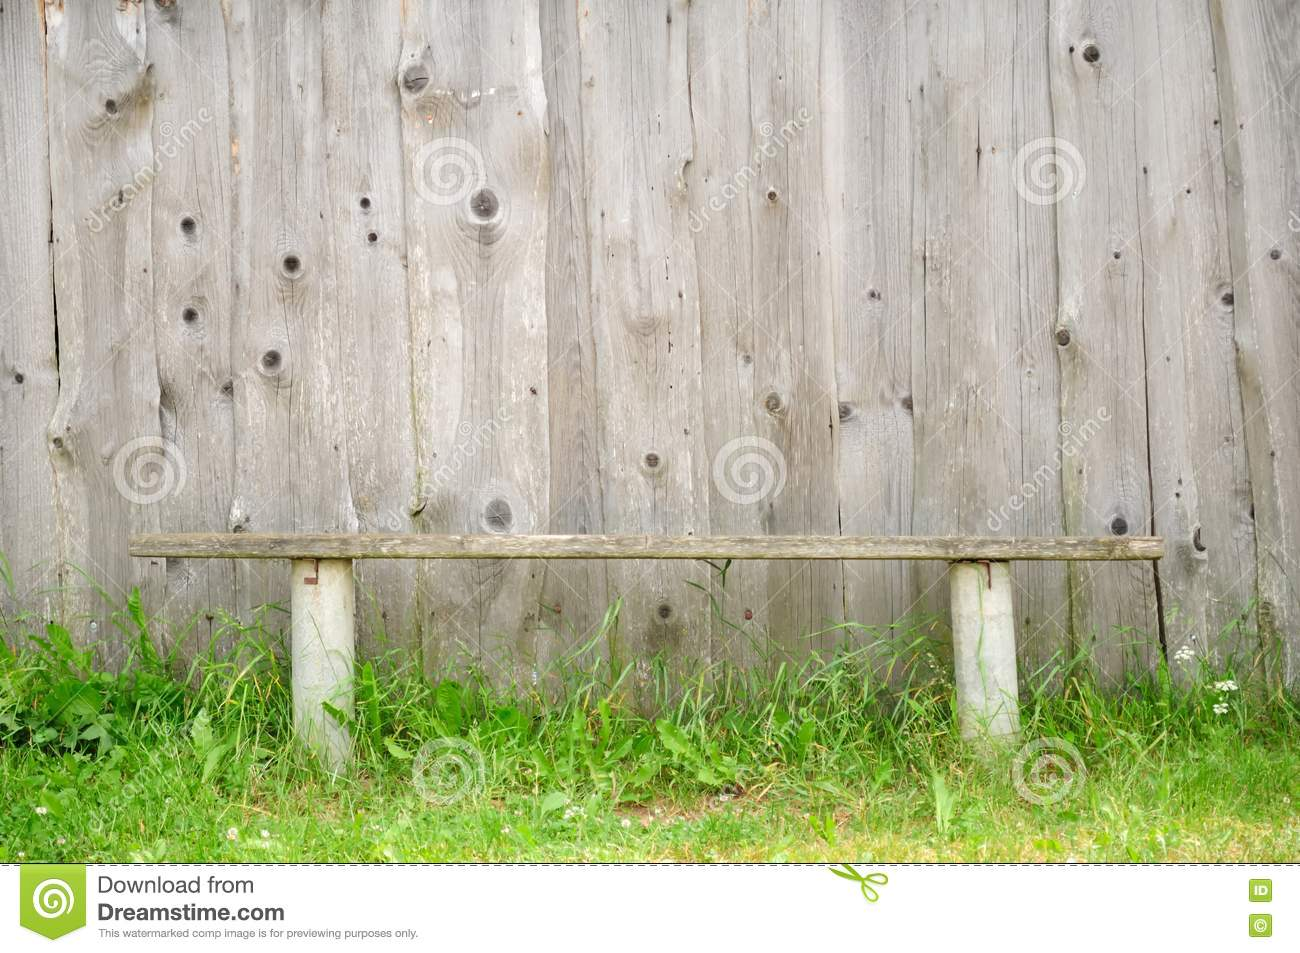 Cool Old Wooden Bench Against Wooden Wall  Stock Photo  Colourbox